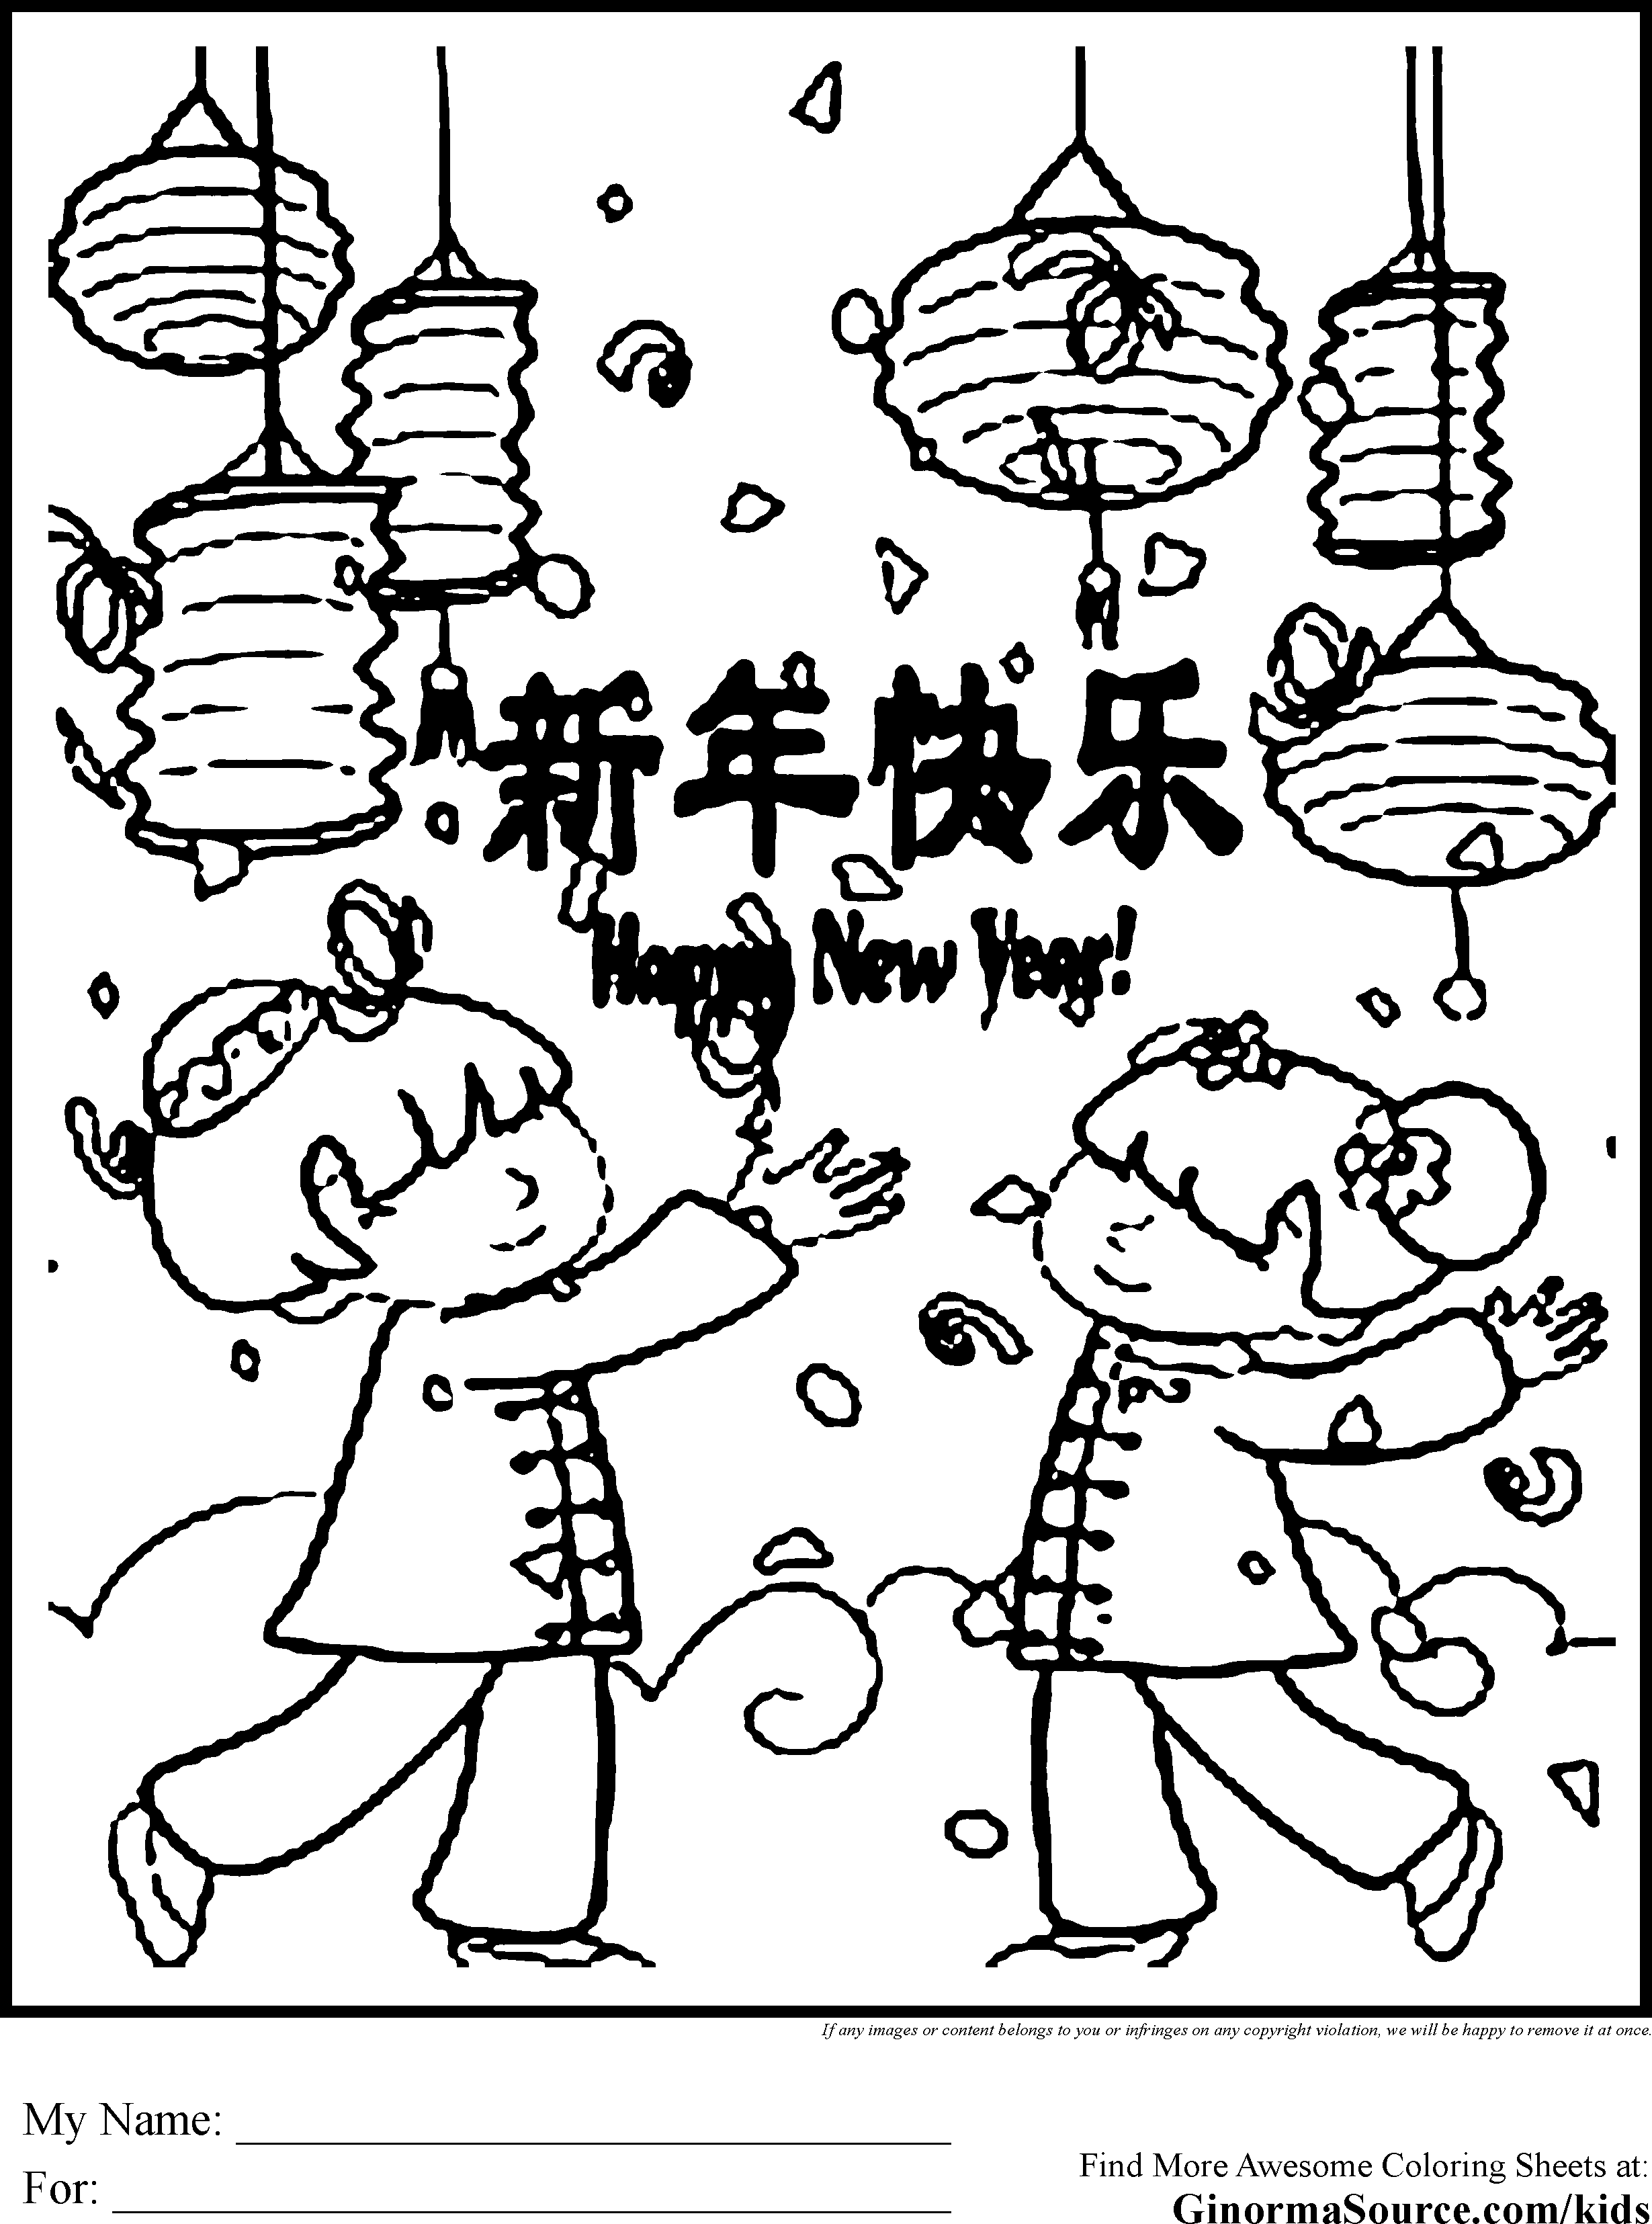 chinese new year coloring pages chinese new year coloring pages best coloring pages for kids pages new coloring chinese year